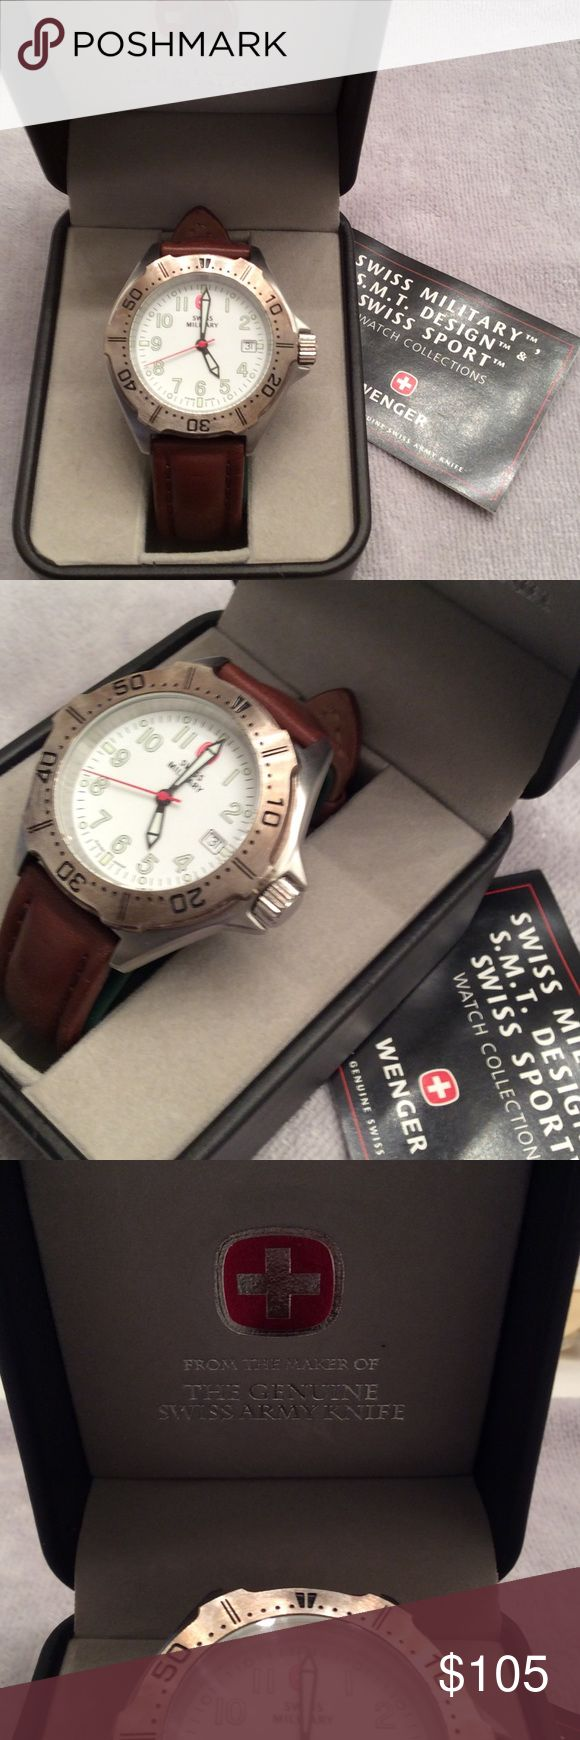 Swiss Wenger Watch Swiss made watch quartz movement, scratch and water resistant, Genuine Leather Band, Luminous hands and markers for nighttime visibility. Excellent condition, Quite vintage!! Battery not included, will need a battery... Swiss Wenger  Accessories Watches